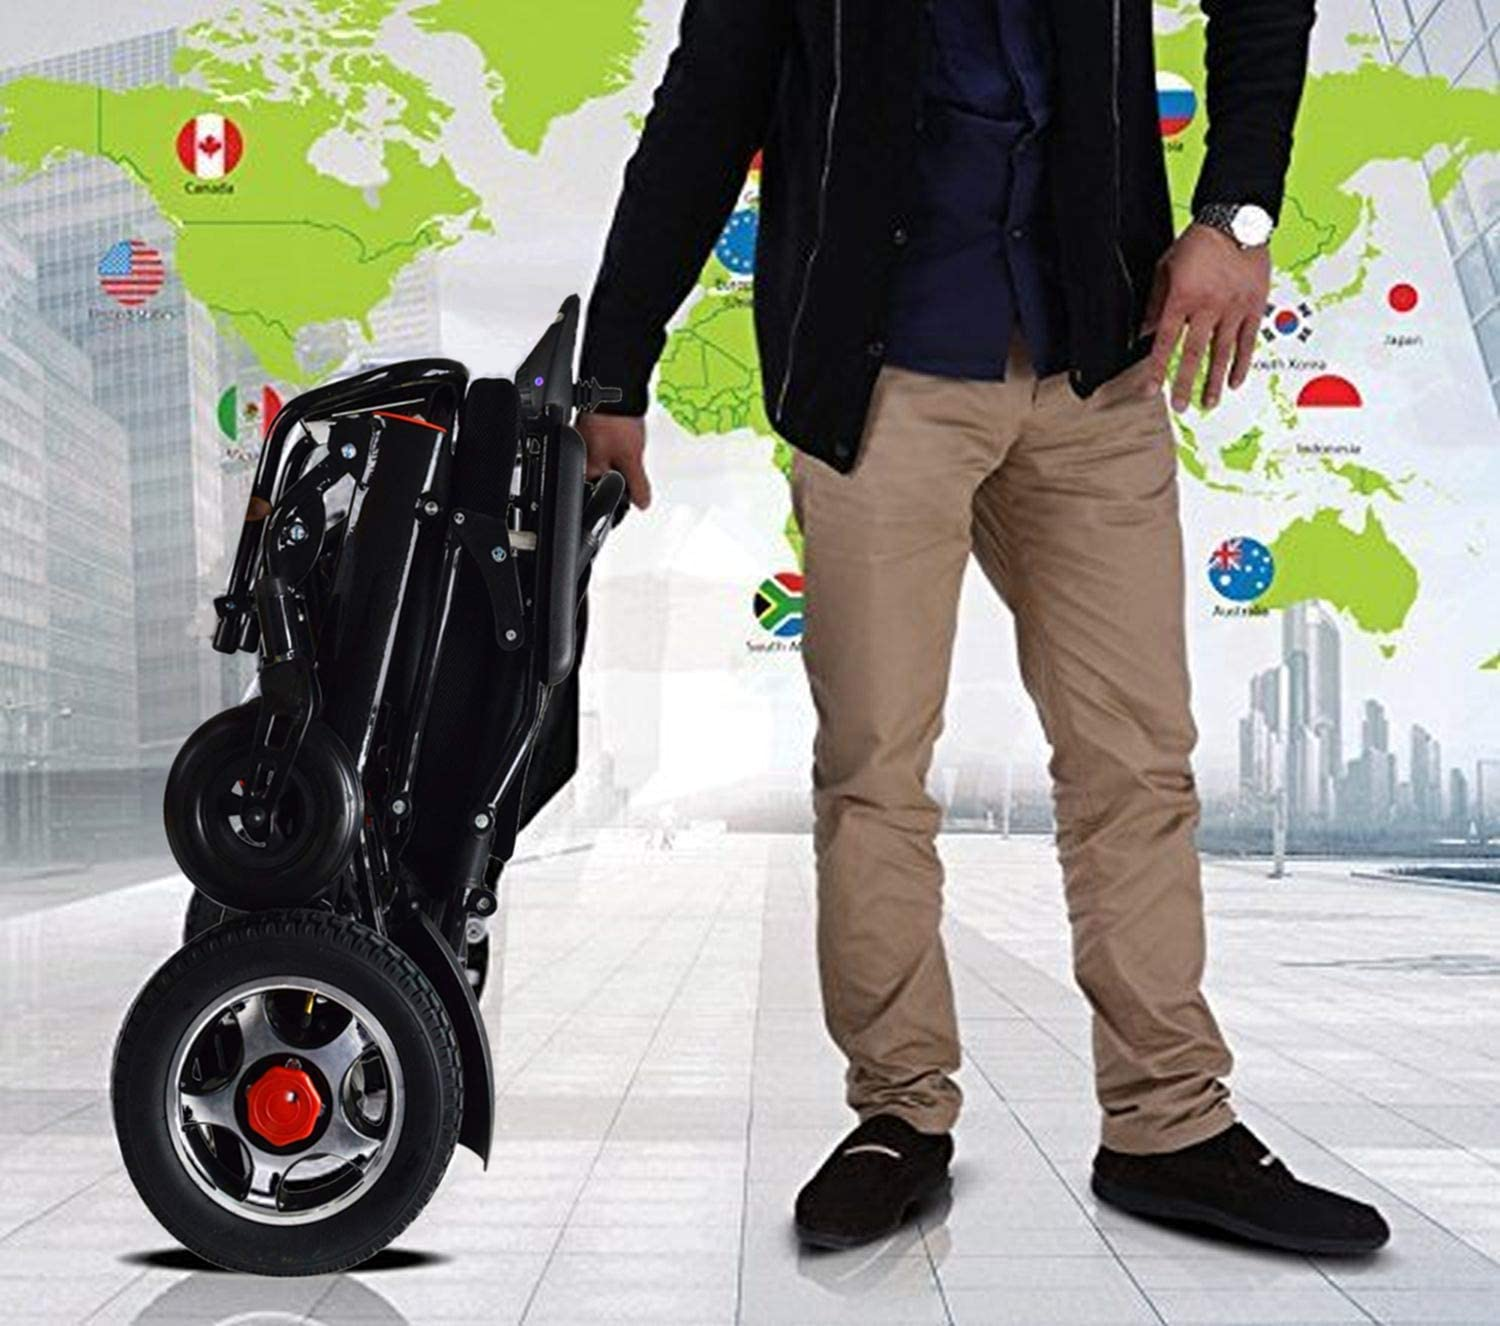 2020 Lightweight Electric Power Wheelchair Mobility Scooter, Aviation Travel Safe Motorized Electric Wheelchair Mobility Aid (Black): Health & Personal Care